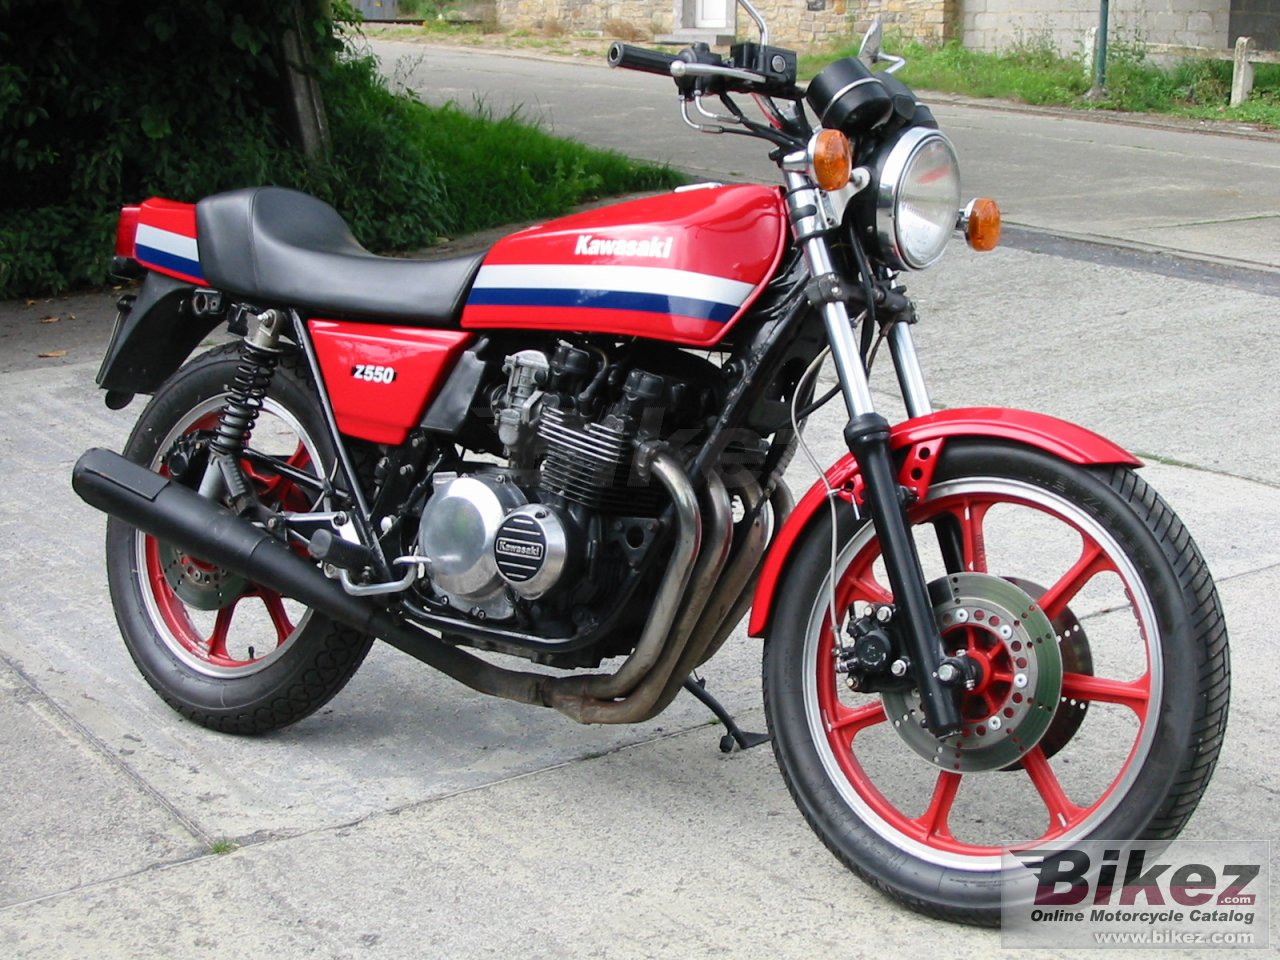 Big  z 550 sport picture and wallpaper from Bikez.com